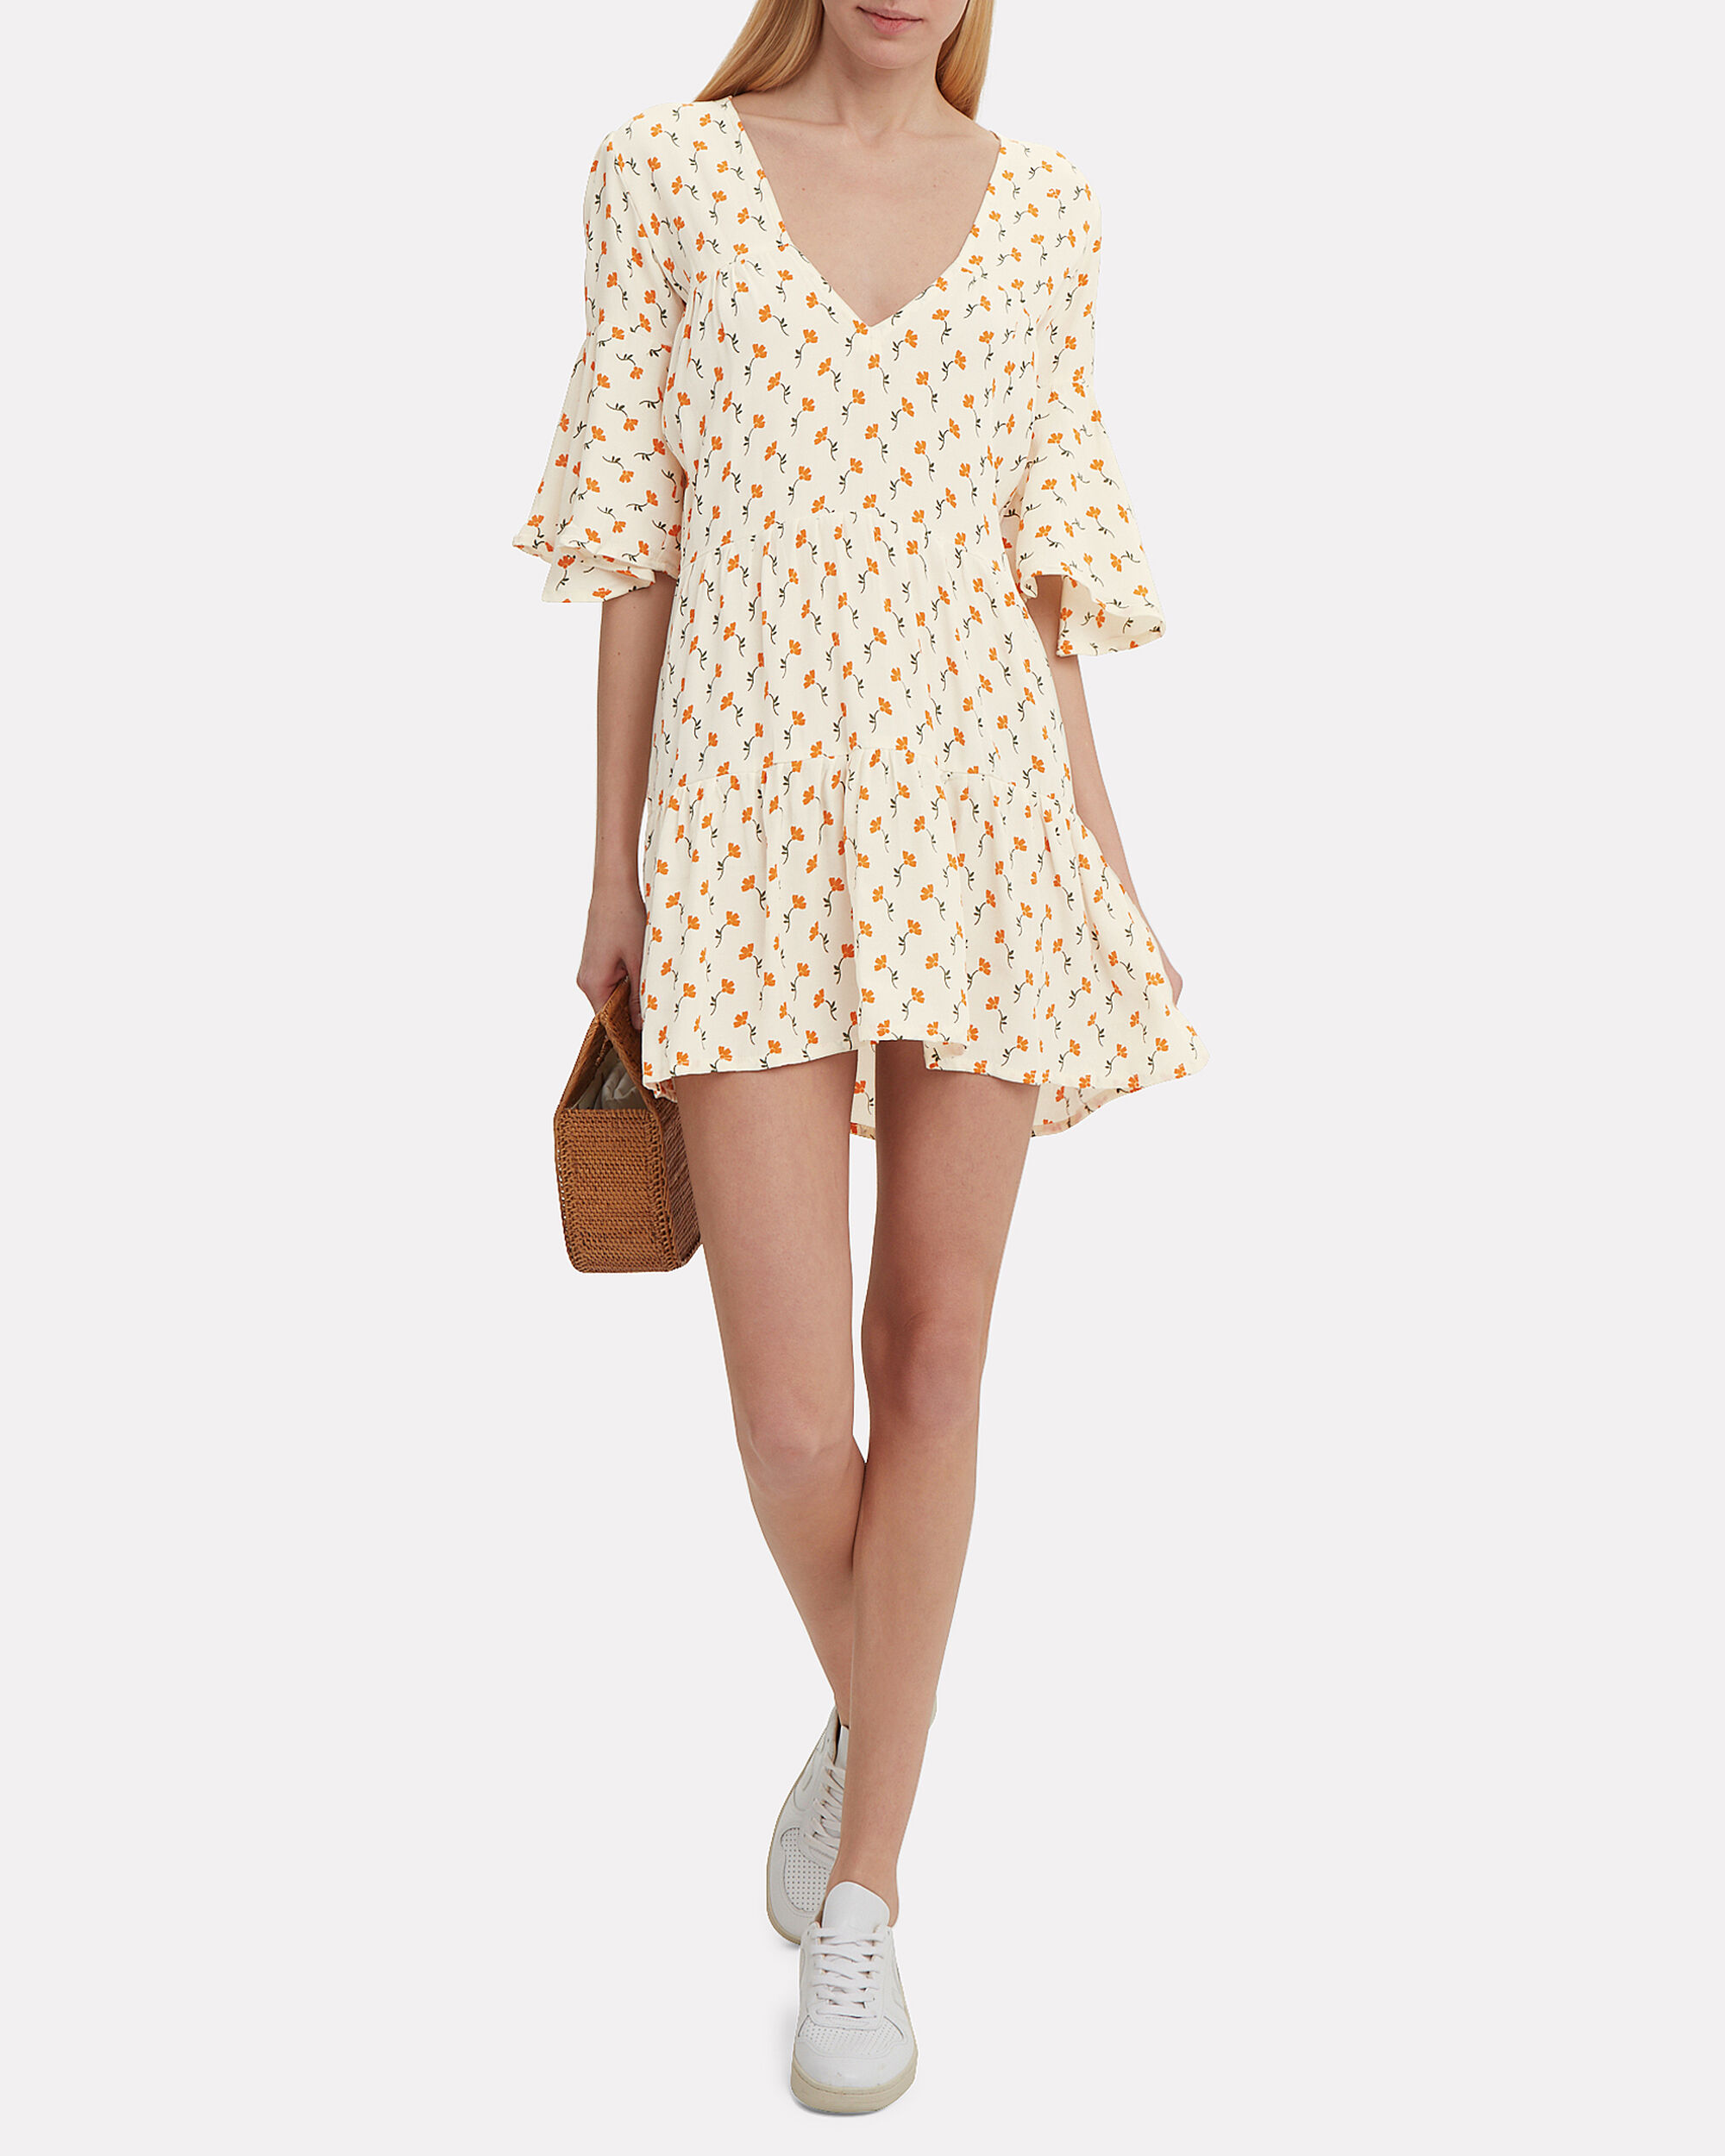 Fresa Mini Dress, IVORY/YELLOW FLORAL, hi-res